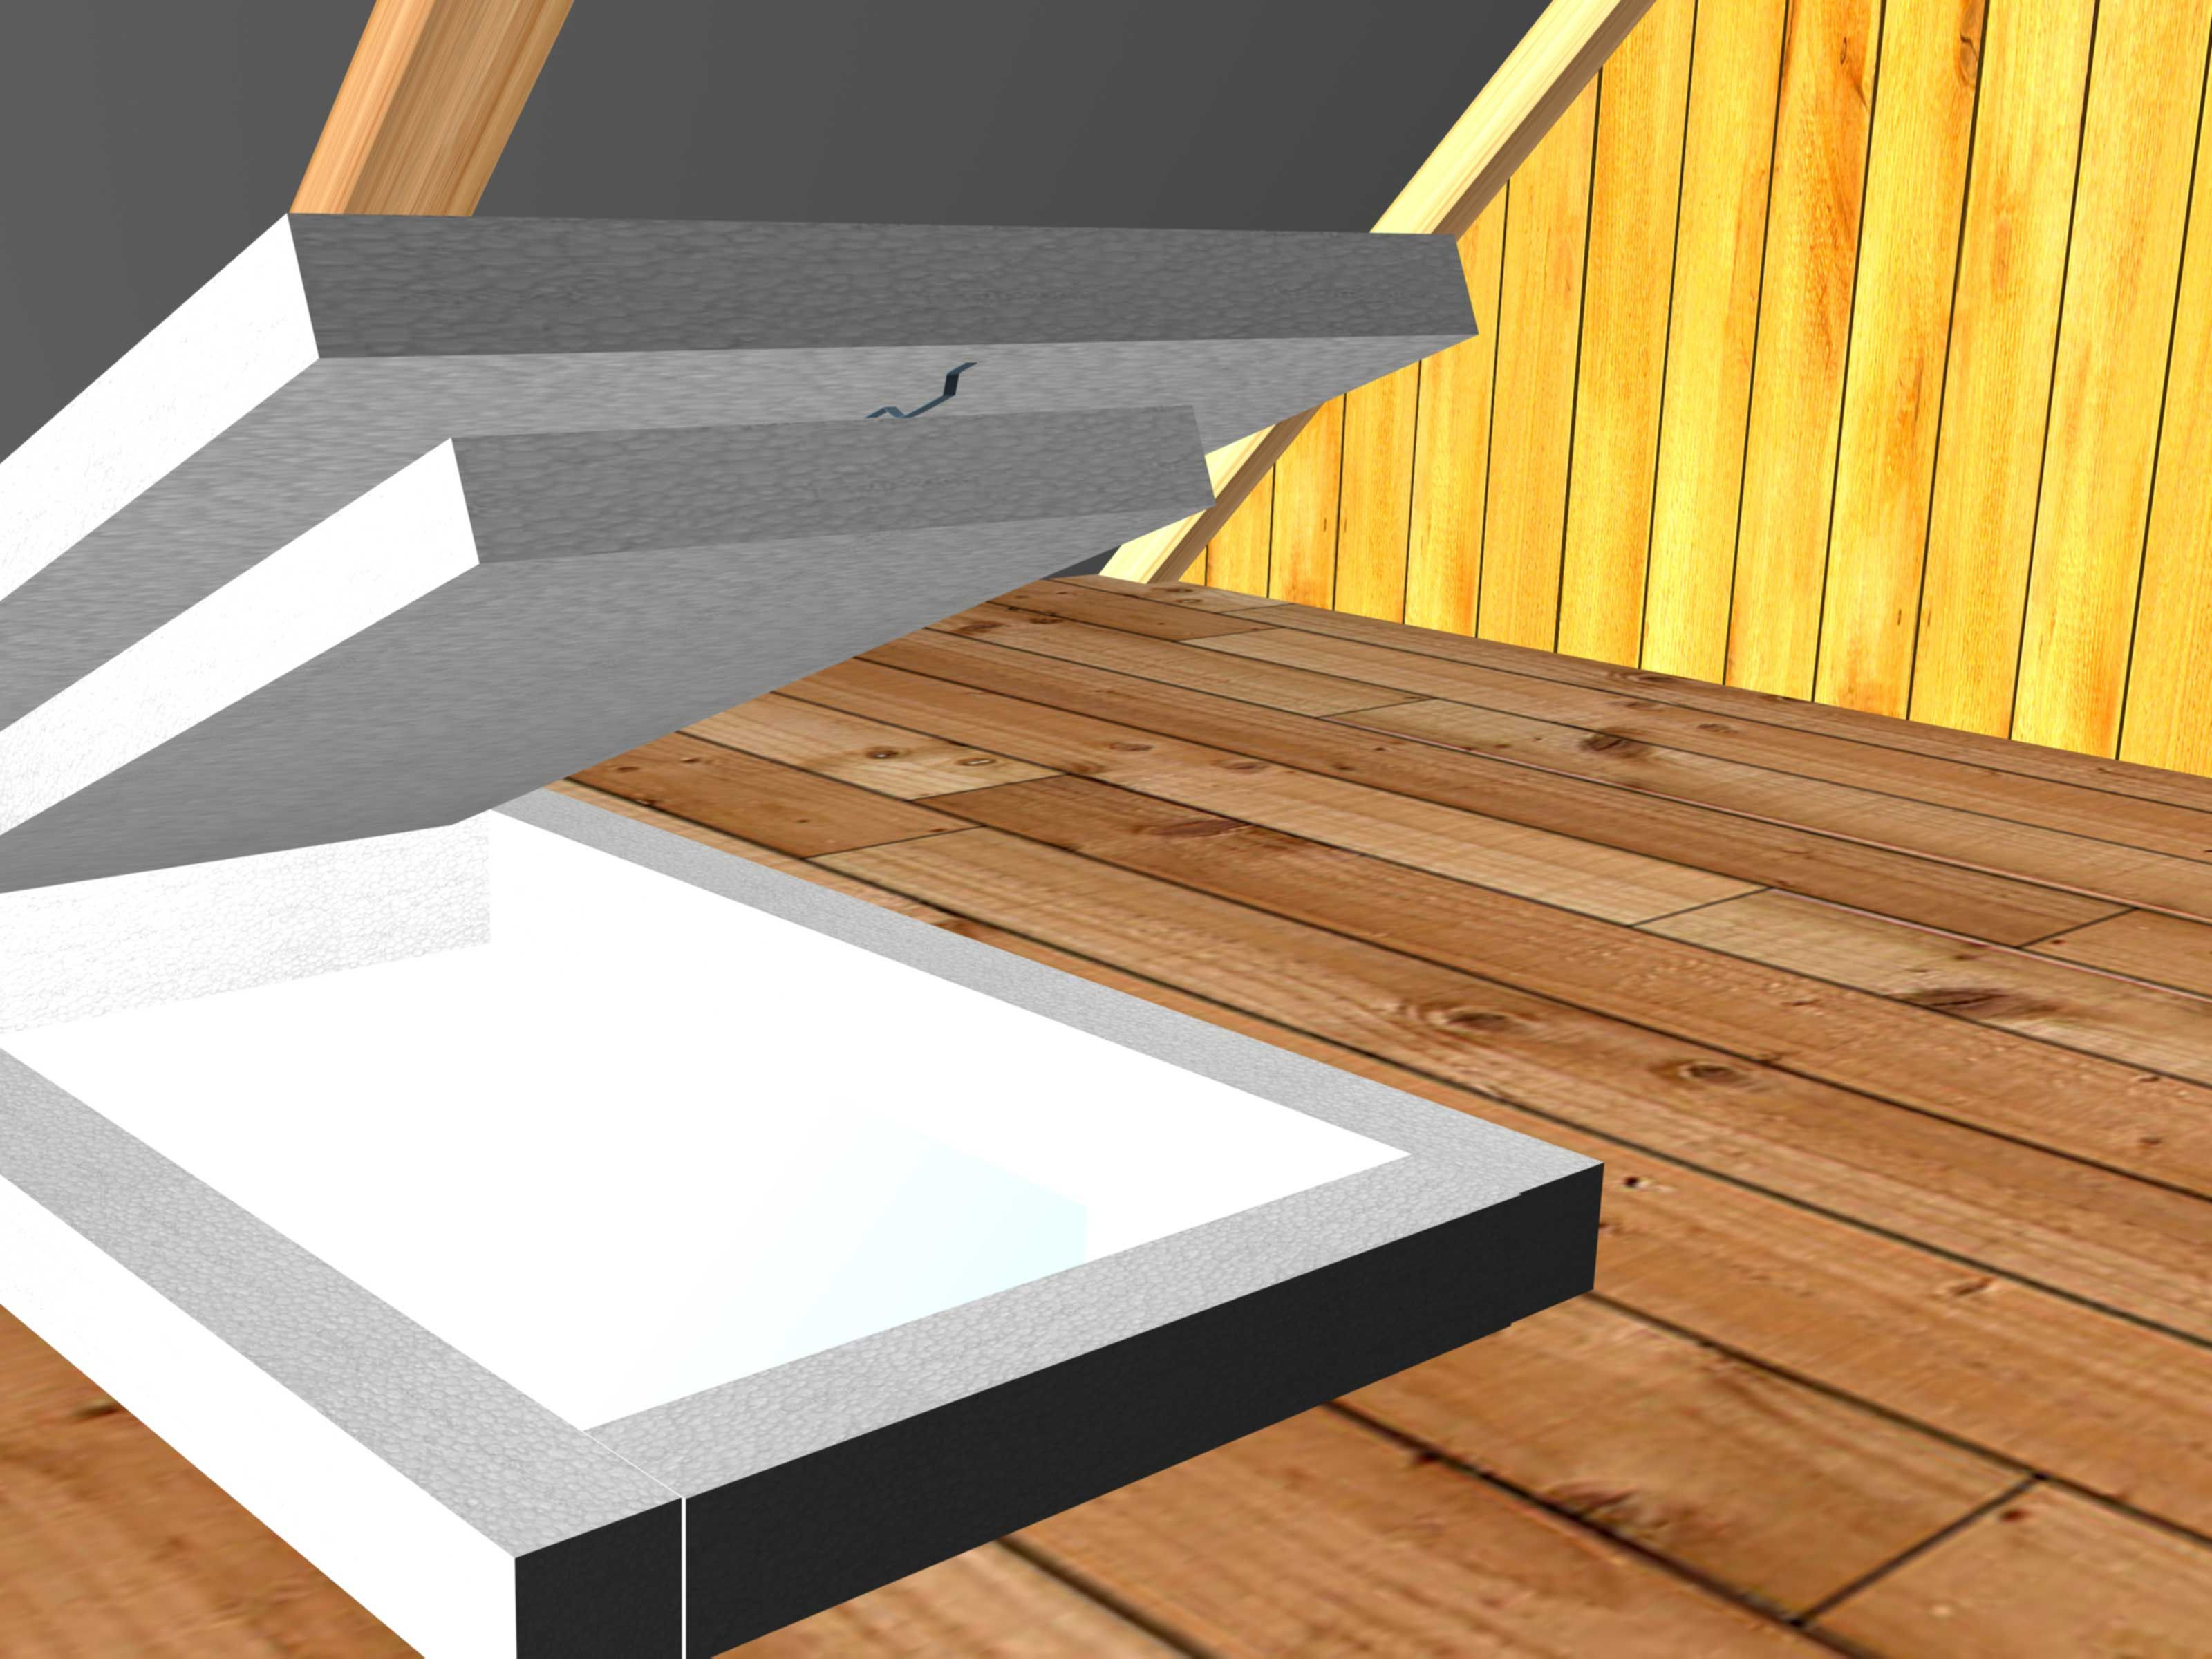 How To Insulate An Attic Door 8 Steps With Pictures Attic Doors Door Insulation Attic Door Insulation